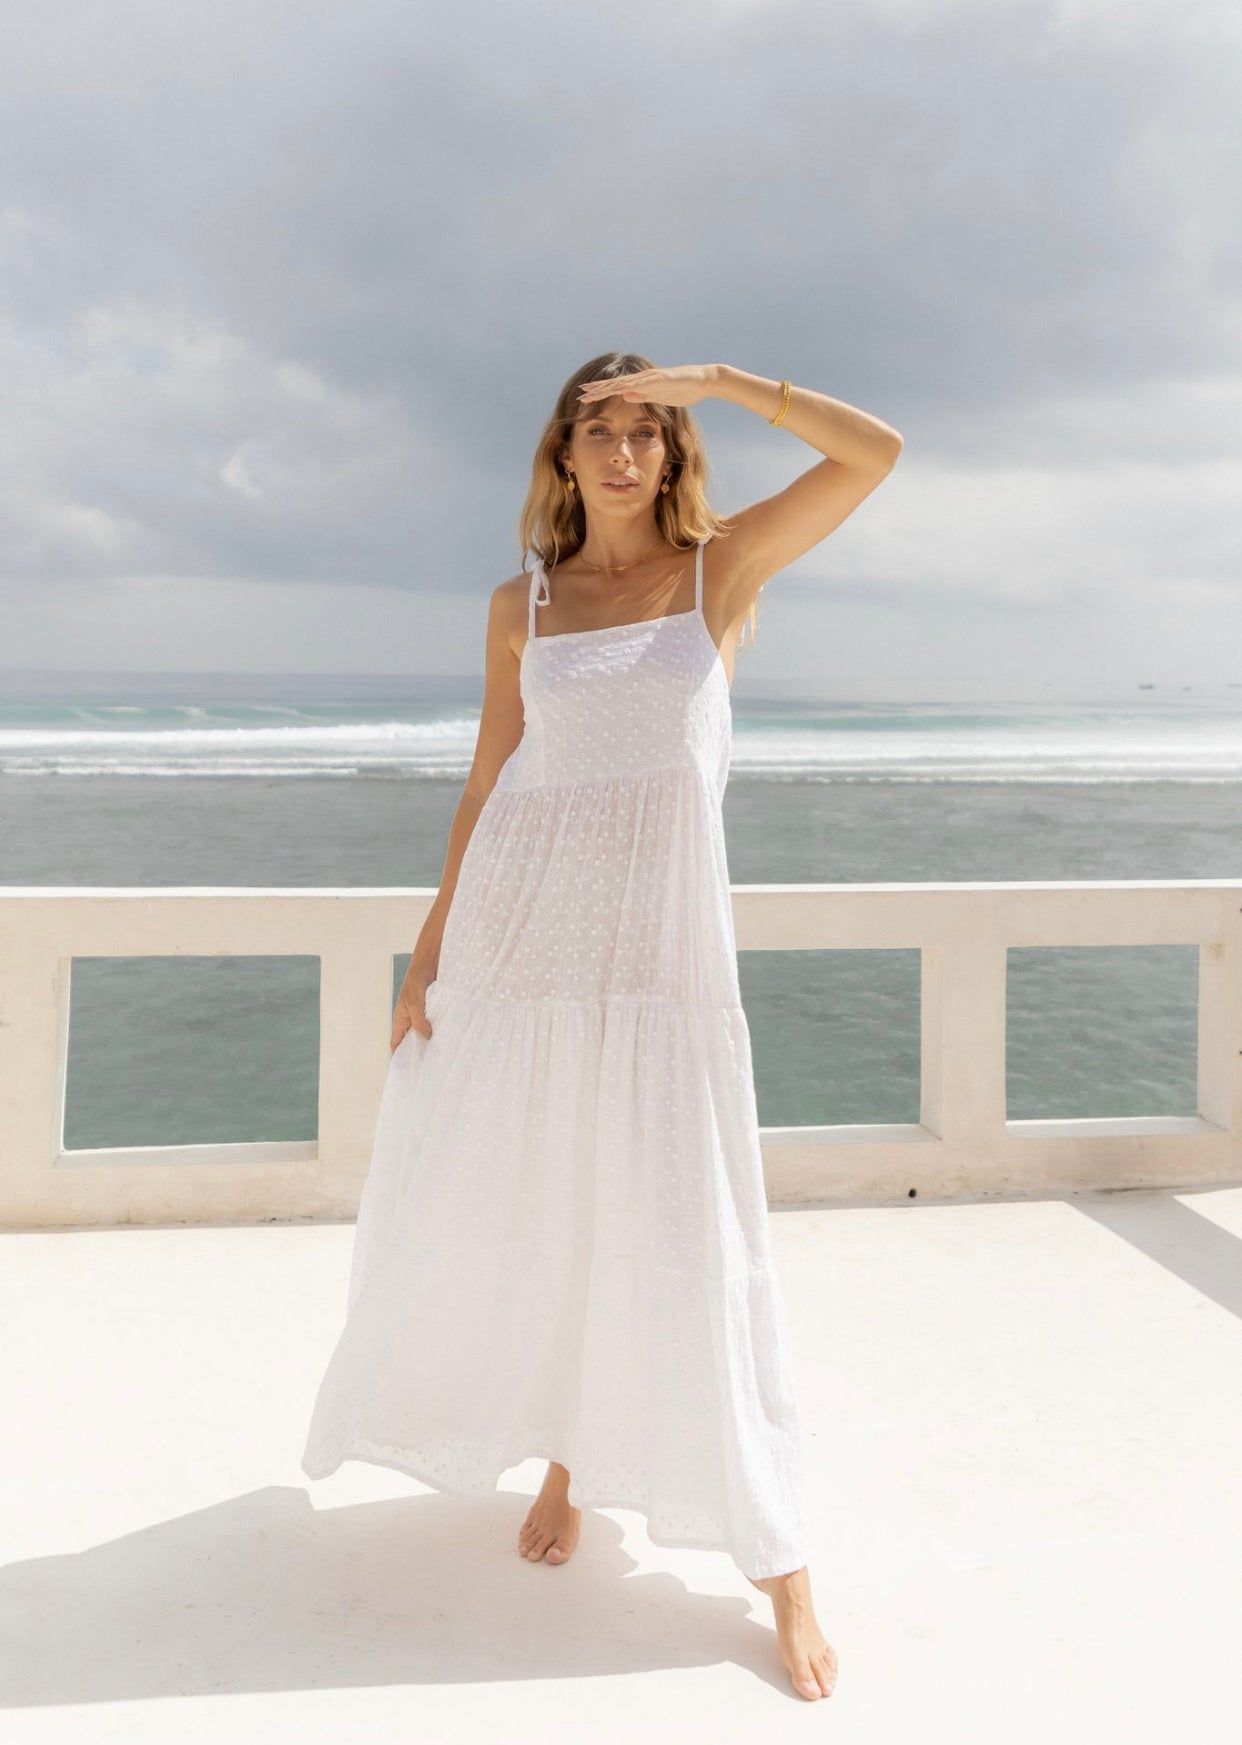 ÉSS THE LABEL Ava Cotton Maxi Dress - Embroidered White